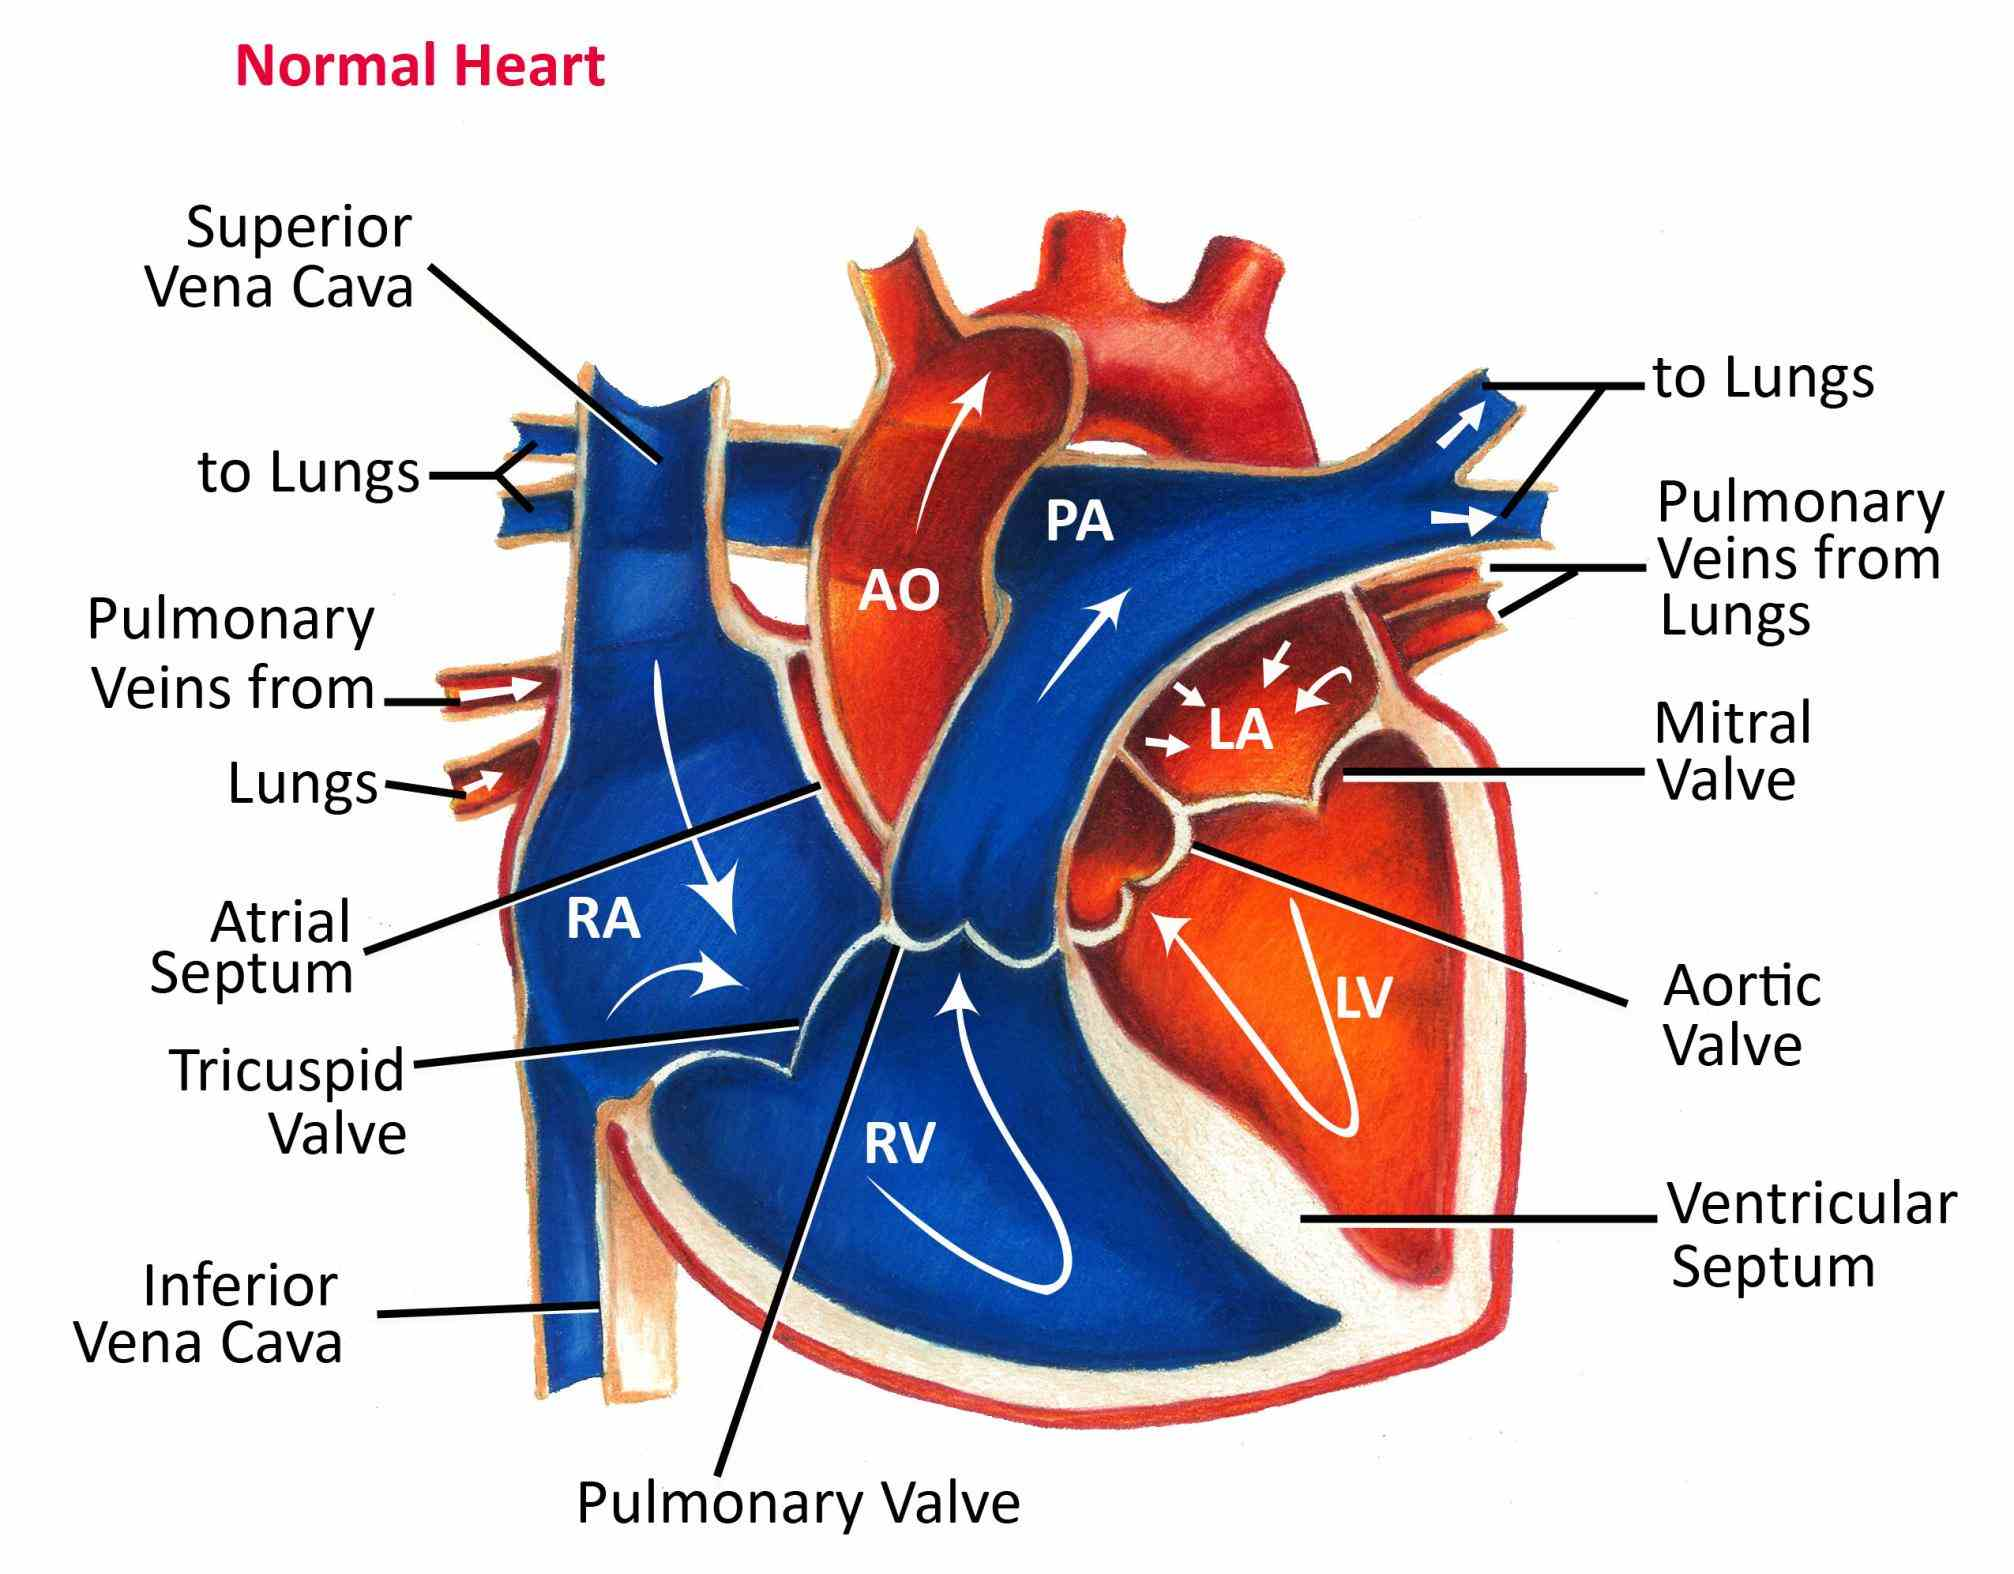 that oxygenated from lungs passes major arteries and gets heart Labeled Diagram Of The Heart And Blood Flow blood